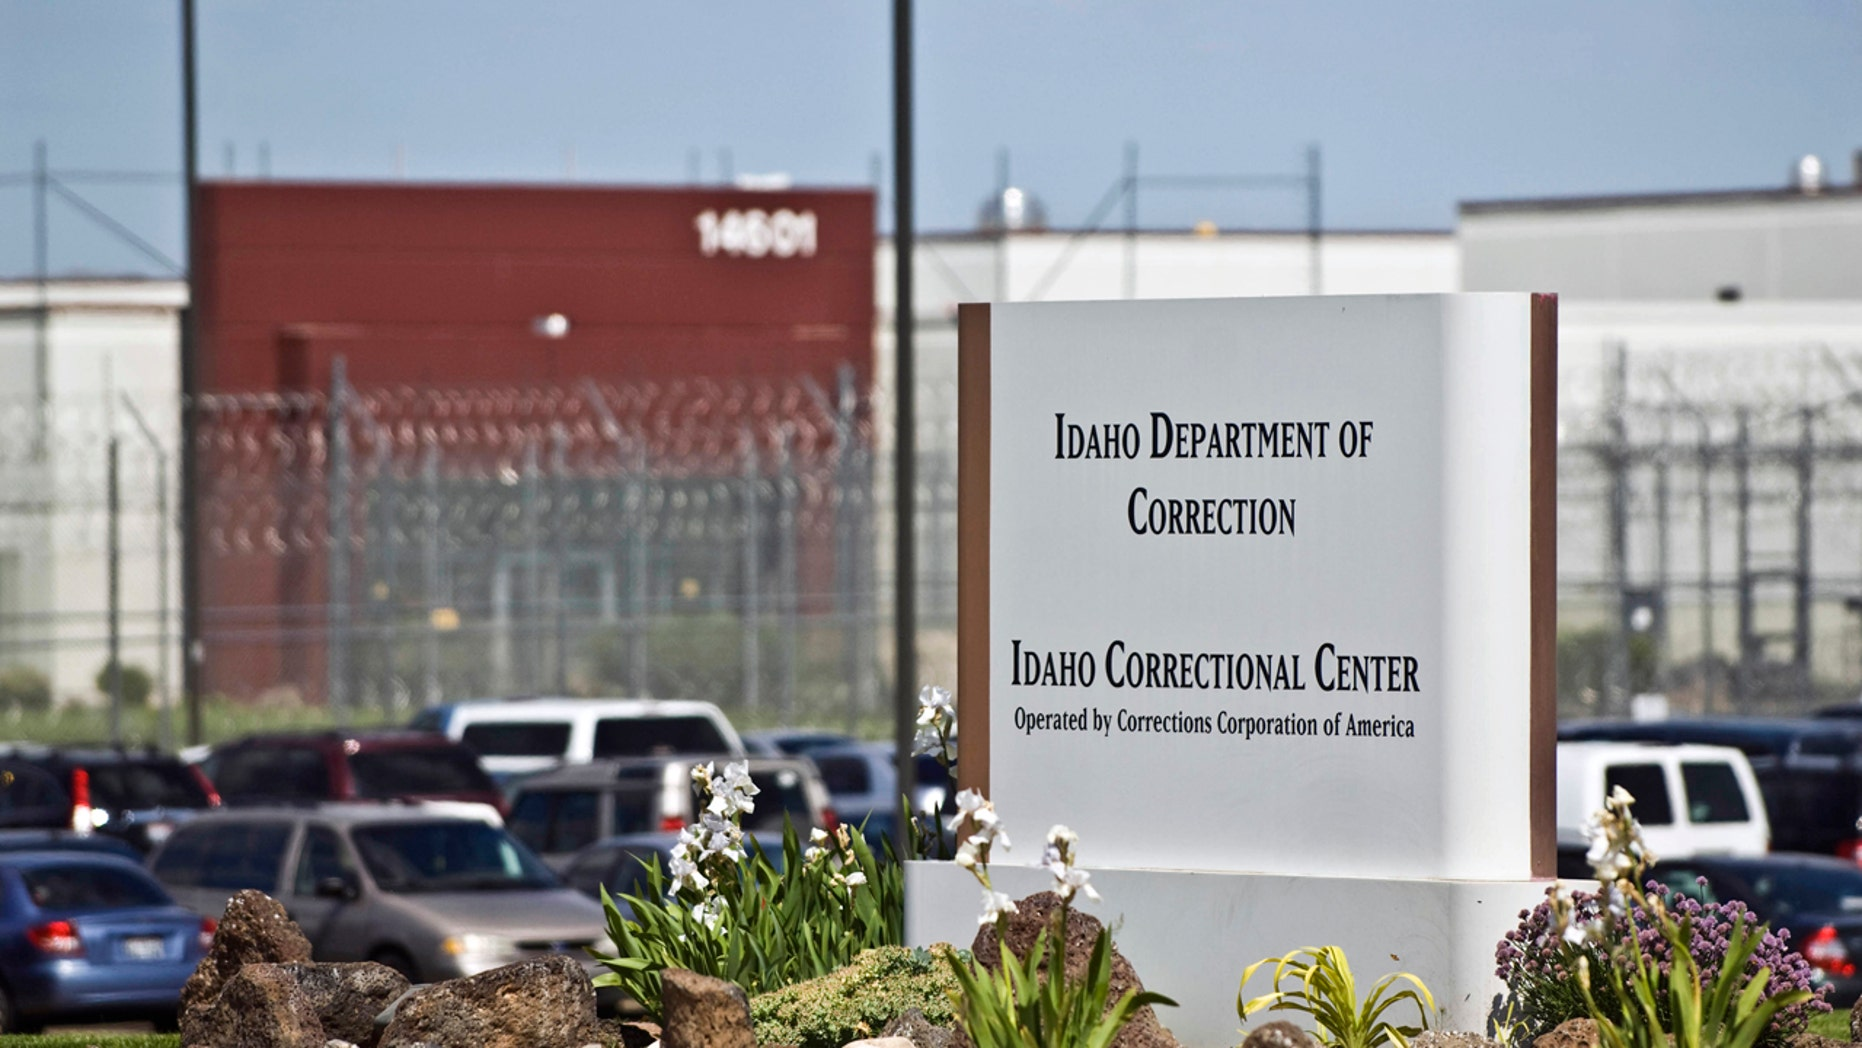 In this June 15, 2010 file photo, the Idaho Correctional Center is shown south of Boise, Idaho, operated by Corrections Corporation of America.